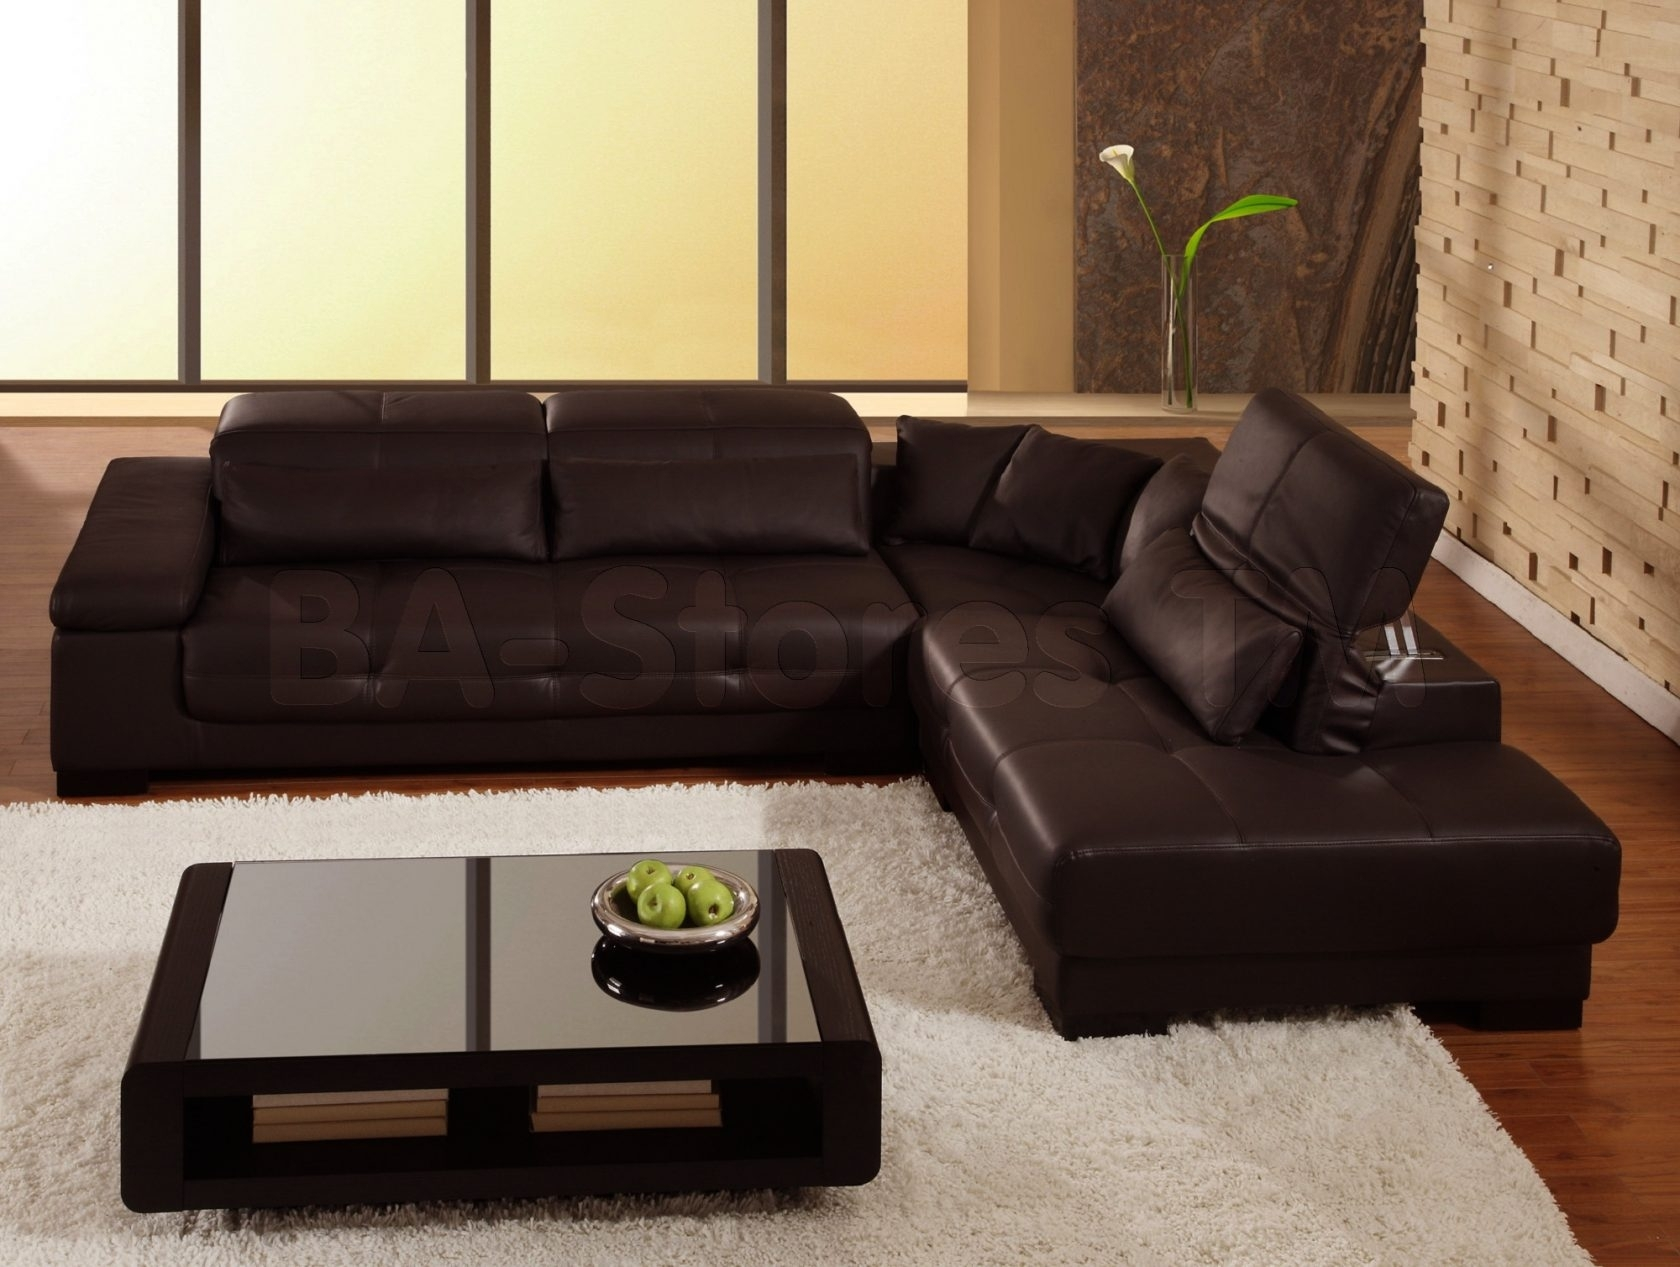 Glamorous Brown Leather Sectional Sofa Clearance 15 For Sectional with Raleigh Sectional Sofas (Image 7 of 10)